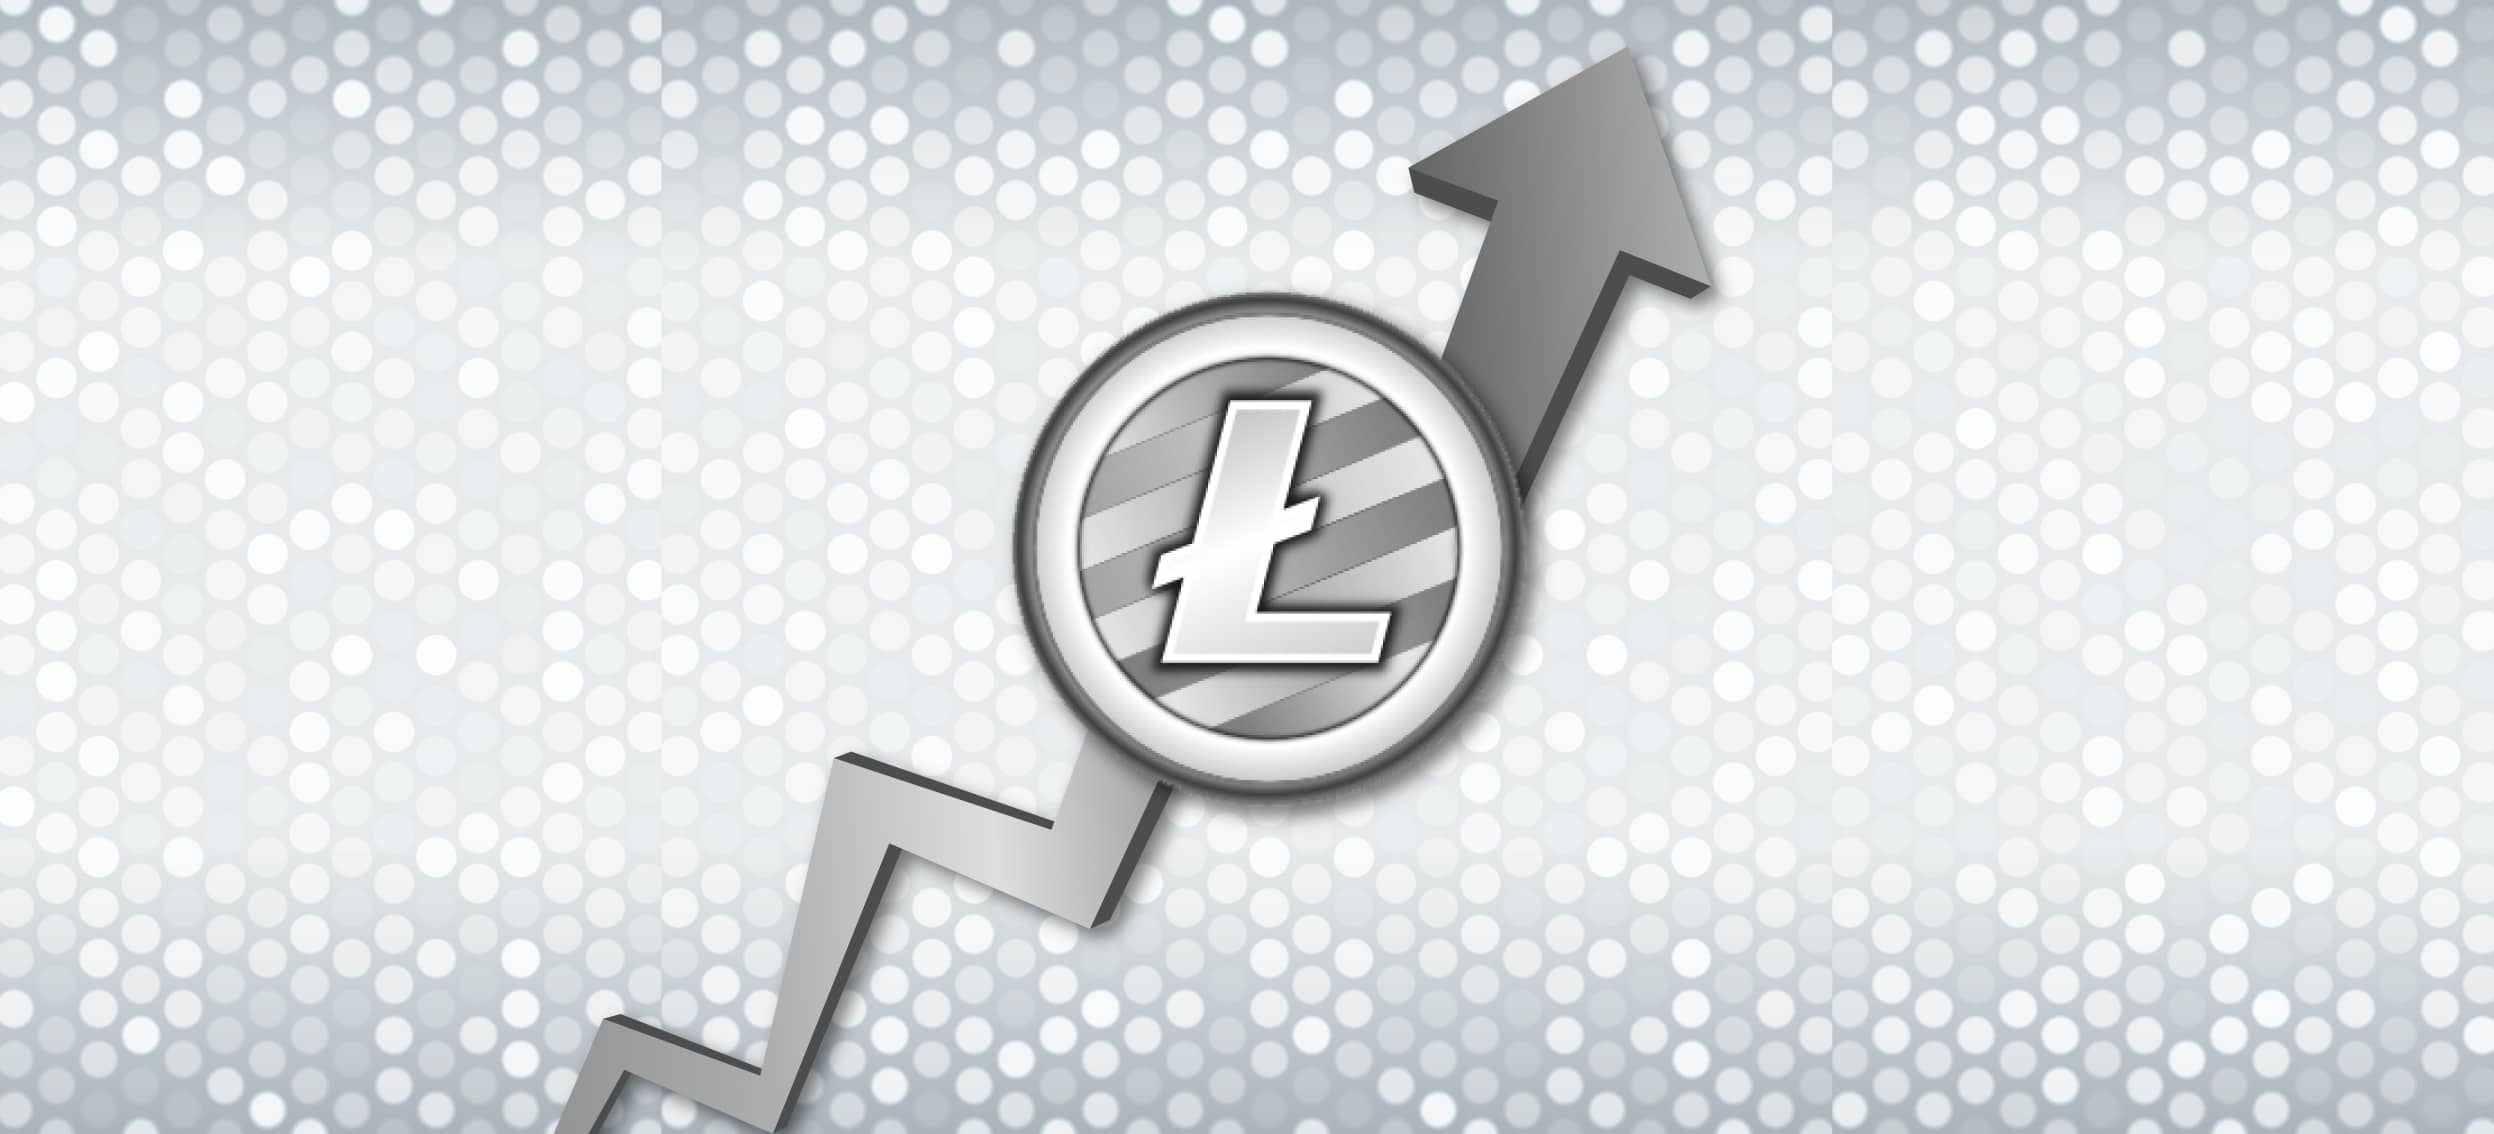 "eToro: Litecoin (LTC) Price Could Be a ""Massive Discount to What it Should be Worth"" 13"